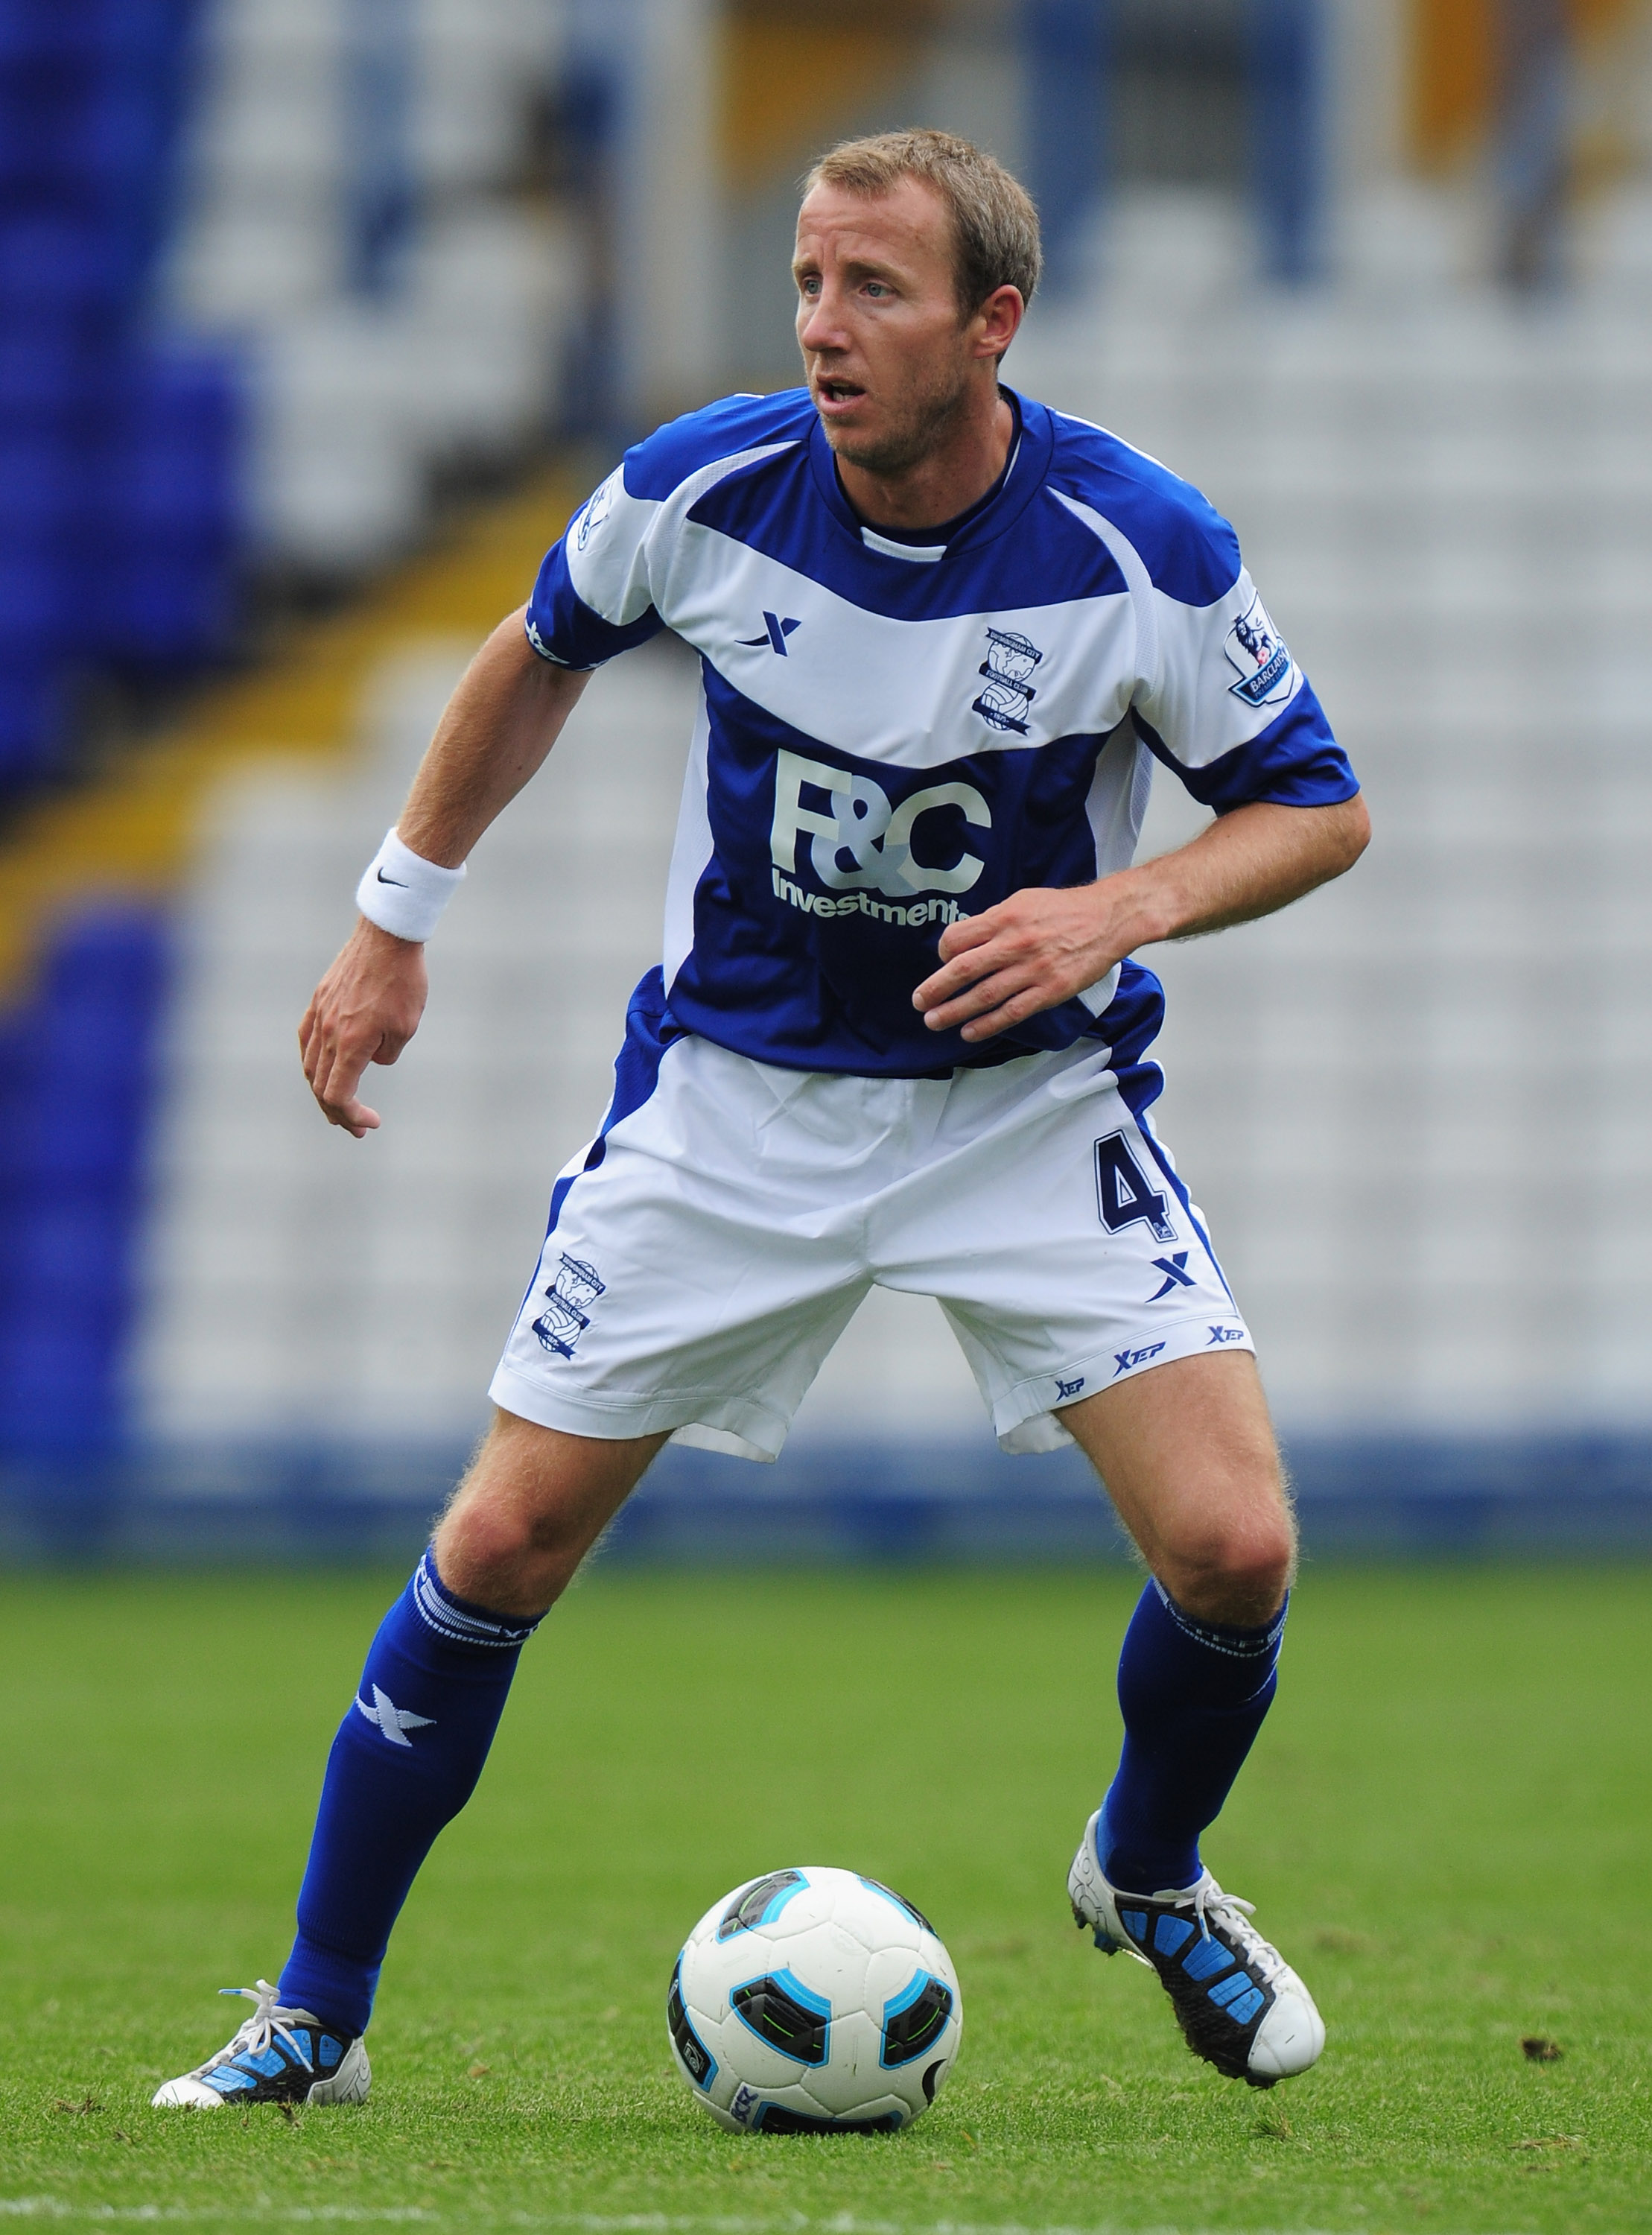 BIRMINGHAM, ENGLAND - AUGUST 07:  Lee Bowyer of Birmingham City in action during the friendly match between Birmingham City and Real Mallorca at St. Andrew's Stadium on August 7, 2010 in Birmingham, England.  (Photo by Shaun Botterill/Getty Images)